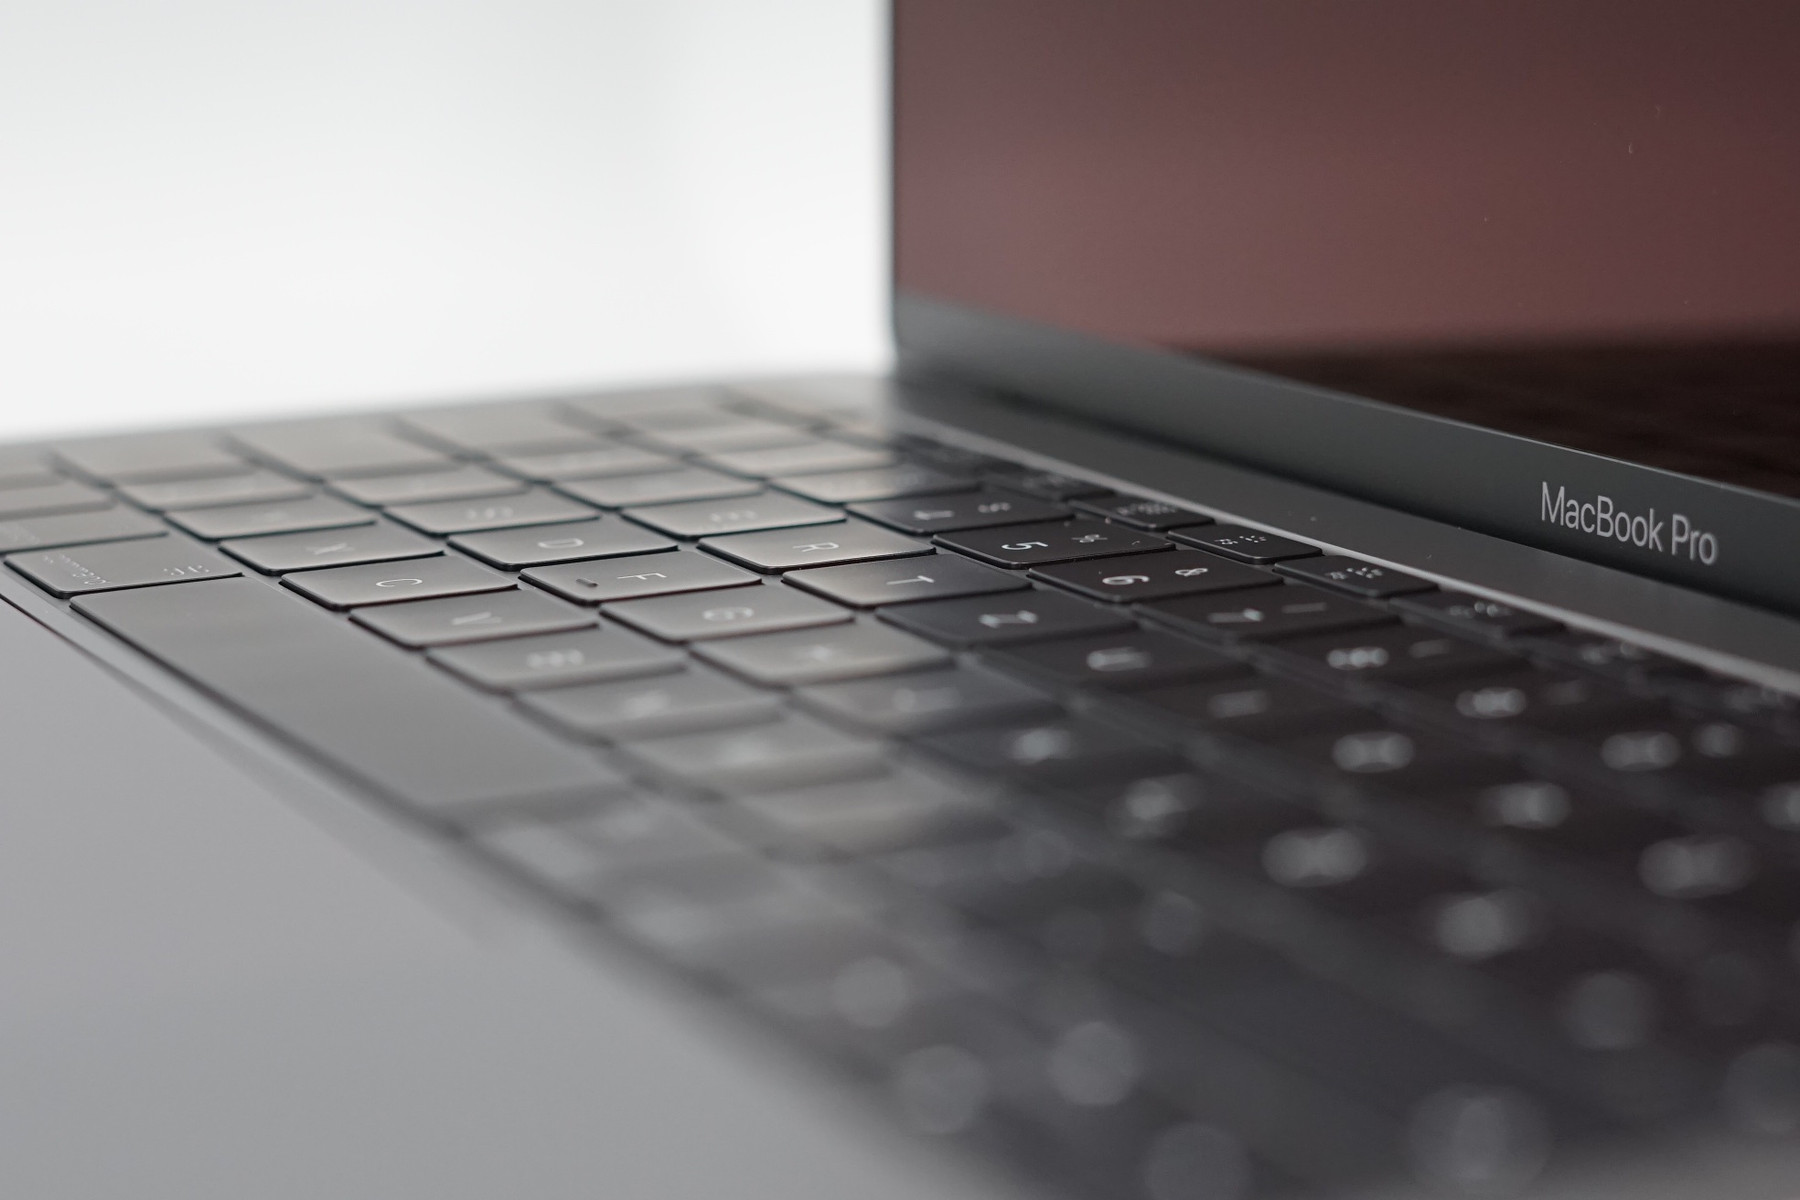 apple macbook pro 13 late 2016 2 ghz i5 without touch. Black Bedroom Furniture Sets. Home Design Ideas